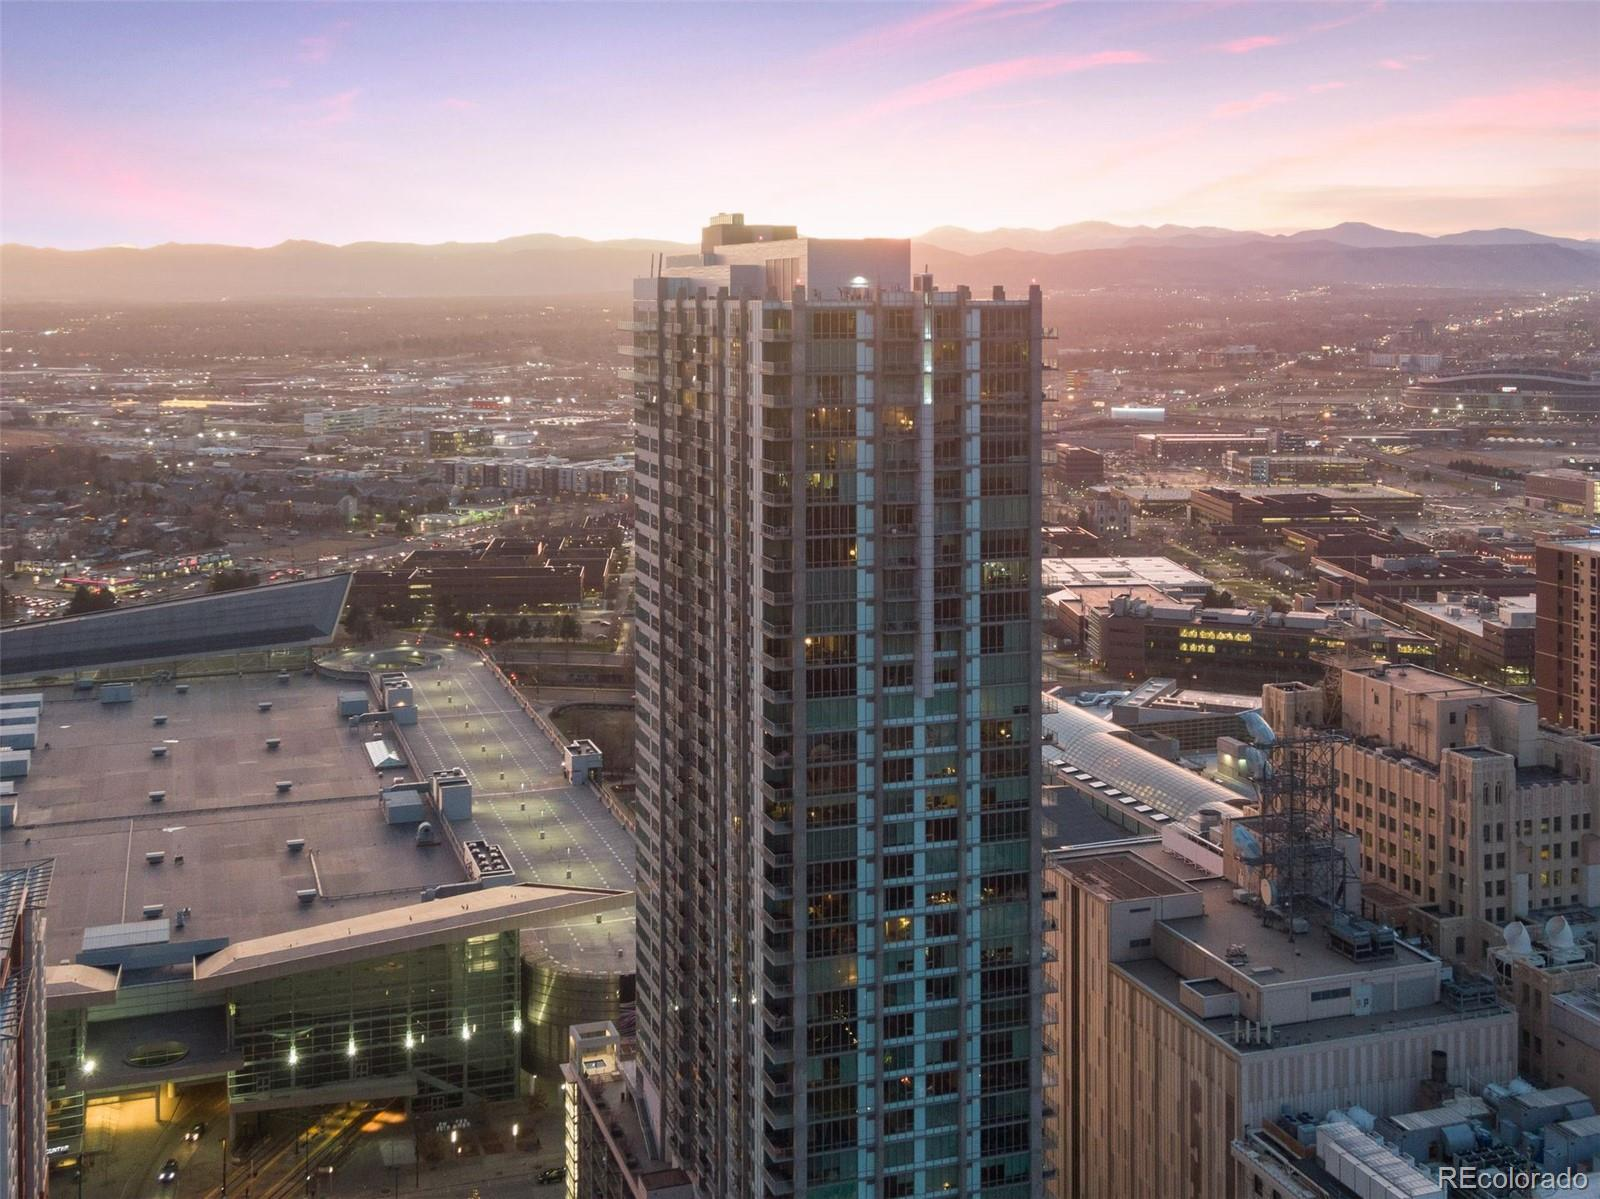 ***Motivated Seller*** Spectacular corner unit with rare 2bd/3ba floor plan! Incredible views from every window! Inviting open plan with floor to ceiling windows to showcase the views. Upgrades you'll find include motorized blinds in all rooms ($18k), painted ceilings ($12k) and a fully enclosed 2nd bedroom ($5k). Includes rare TWO deed parking spaces (#338/340), a deeded motorcycle space (#10), and 2 storage units (all on 5th floor). Don't miss the great amenities (9th floor) that include year round outdoor heated pool, 2 hot tubs, outdoor grilling area, fire pit, large fitness center, theater room, garage dog park, yoga garden, 24-hour courtesy desk, and furnished guest suites. Conveniently located next to the Convention Center, Performing Arts Center,16th Street Mall, and Light-rail. All seller owned furniture is negotiable for purchase.